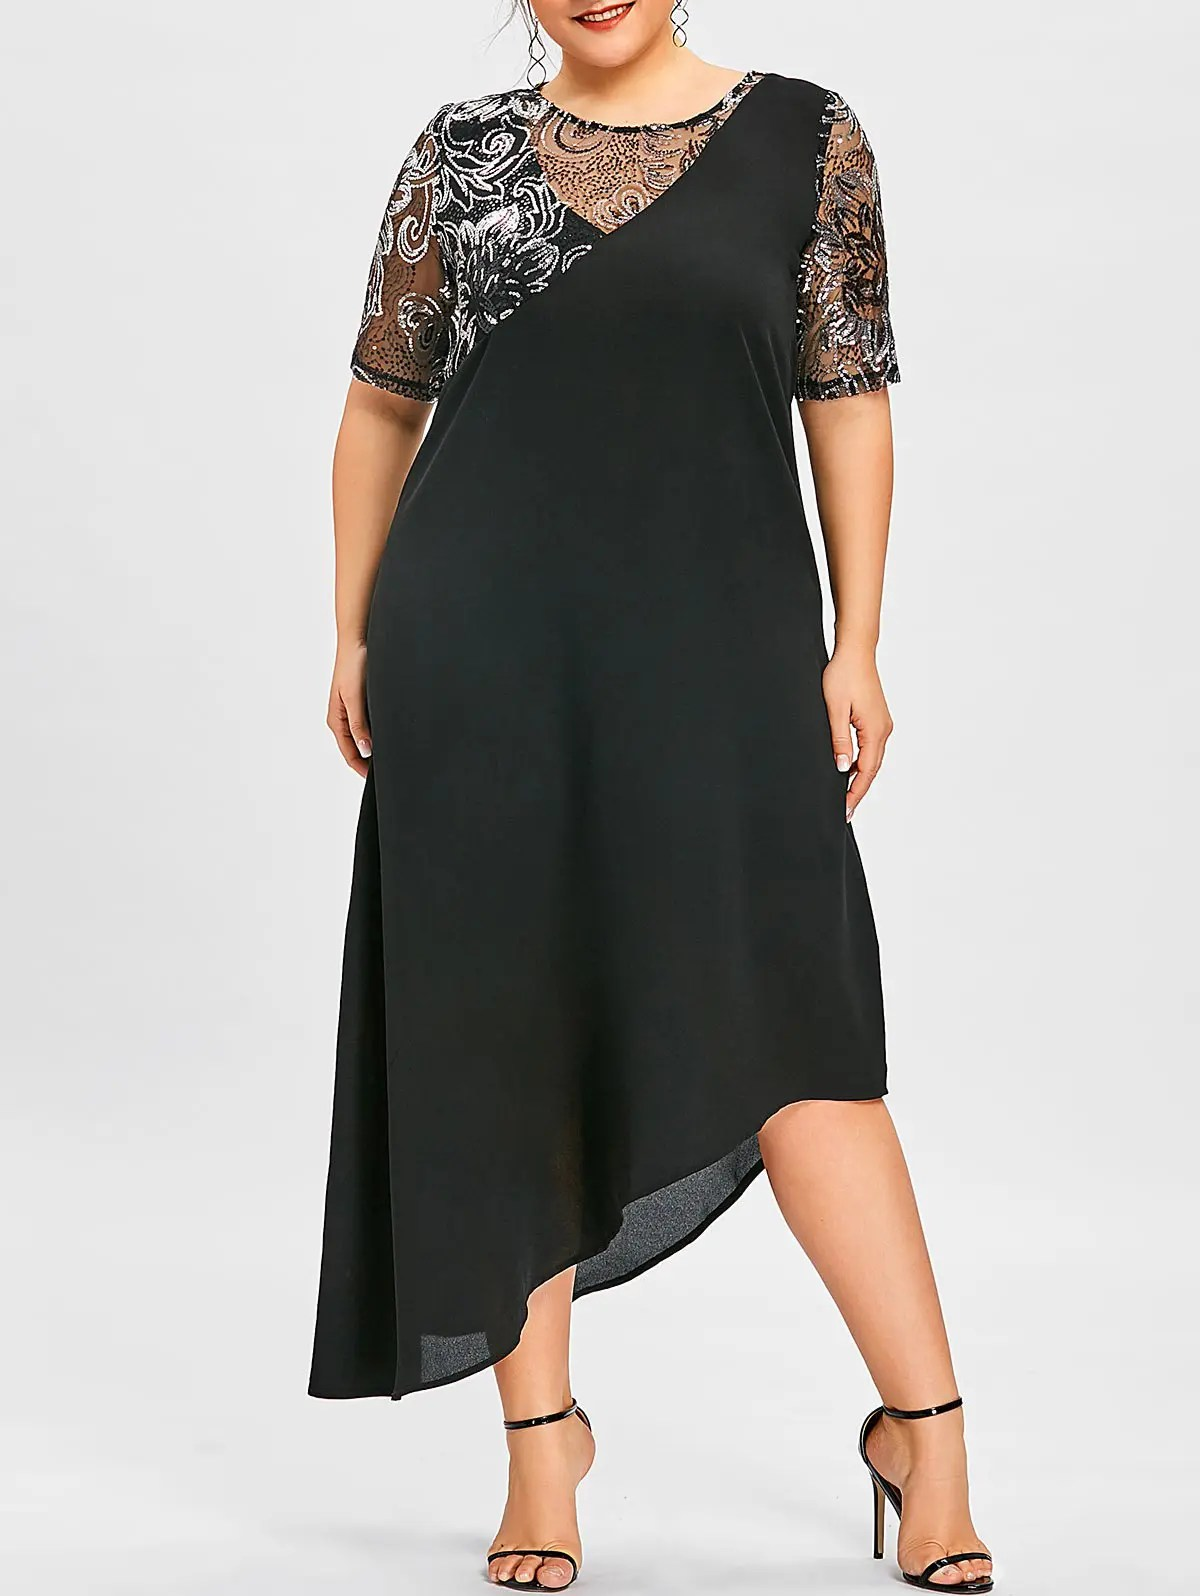 Black 5xl Plus Size Sequined Asymmetric Flowing Dress